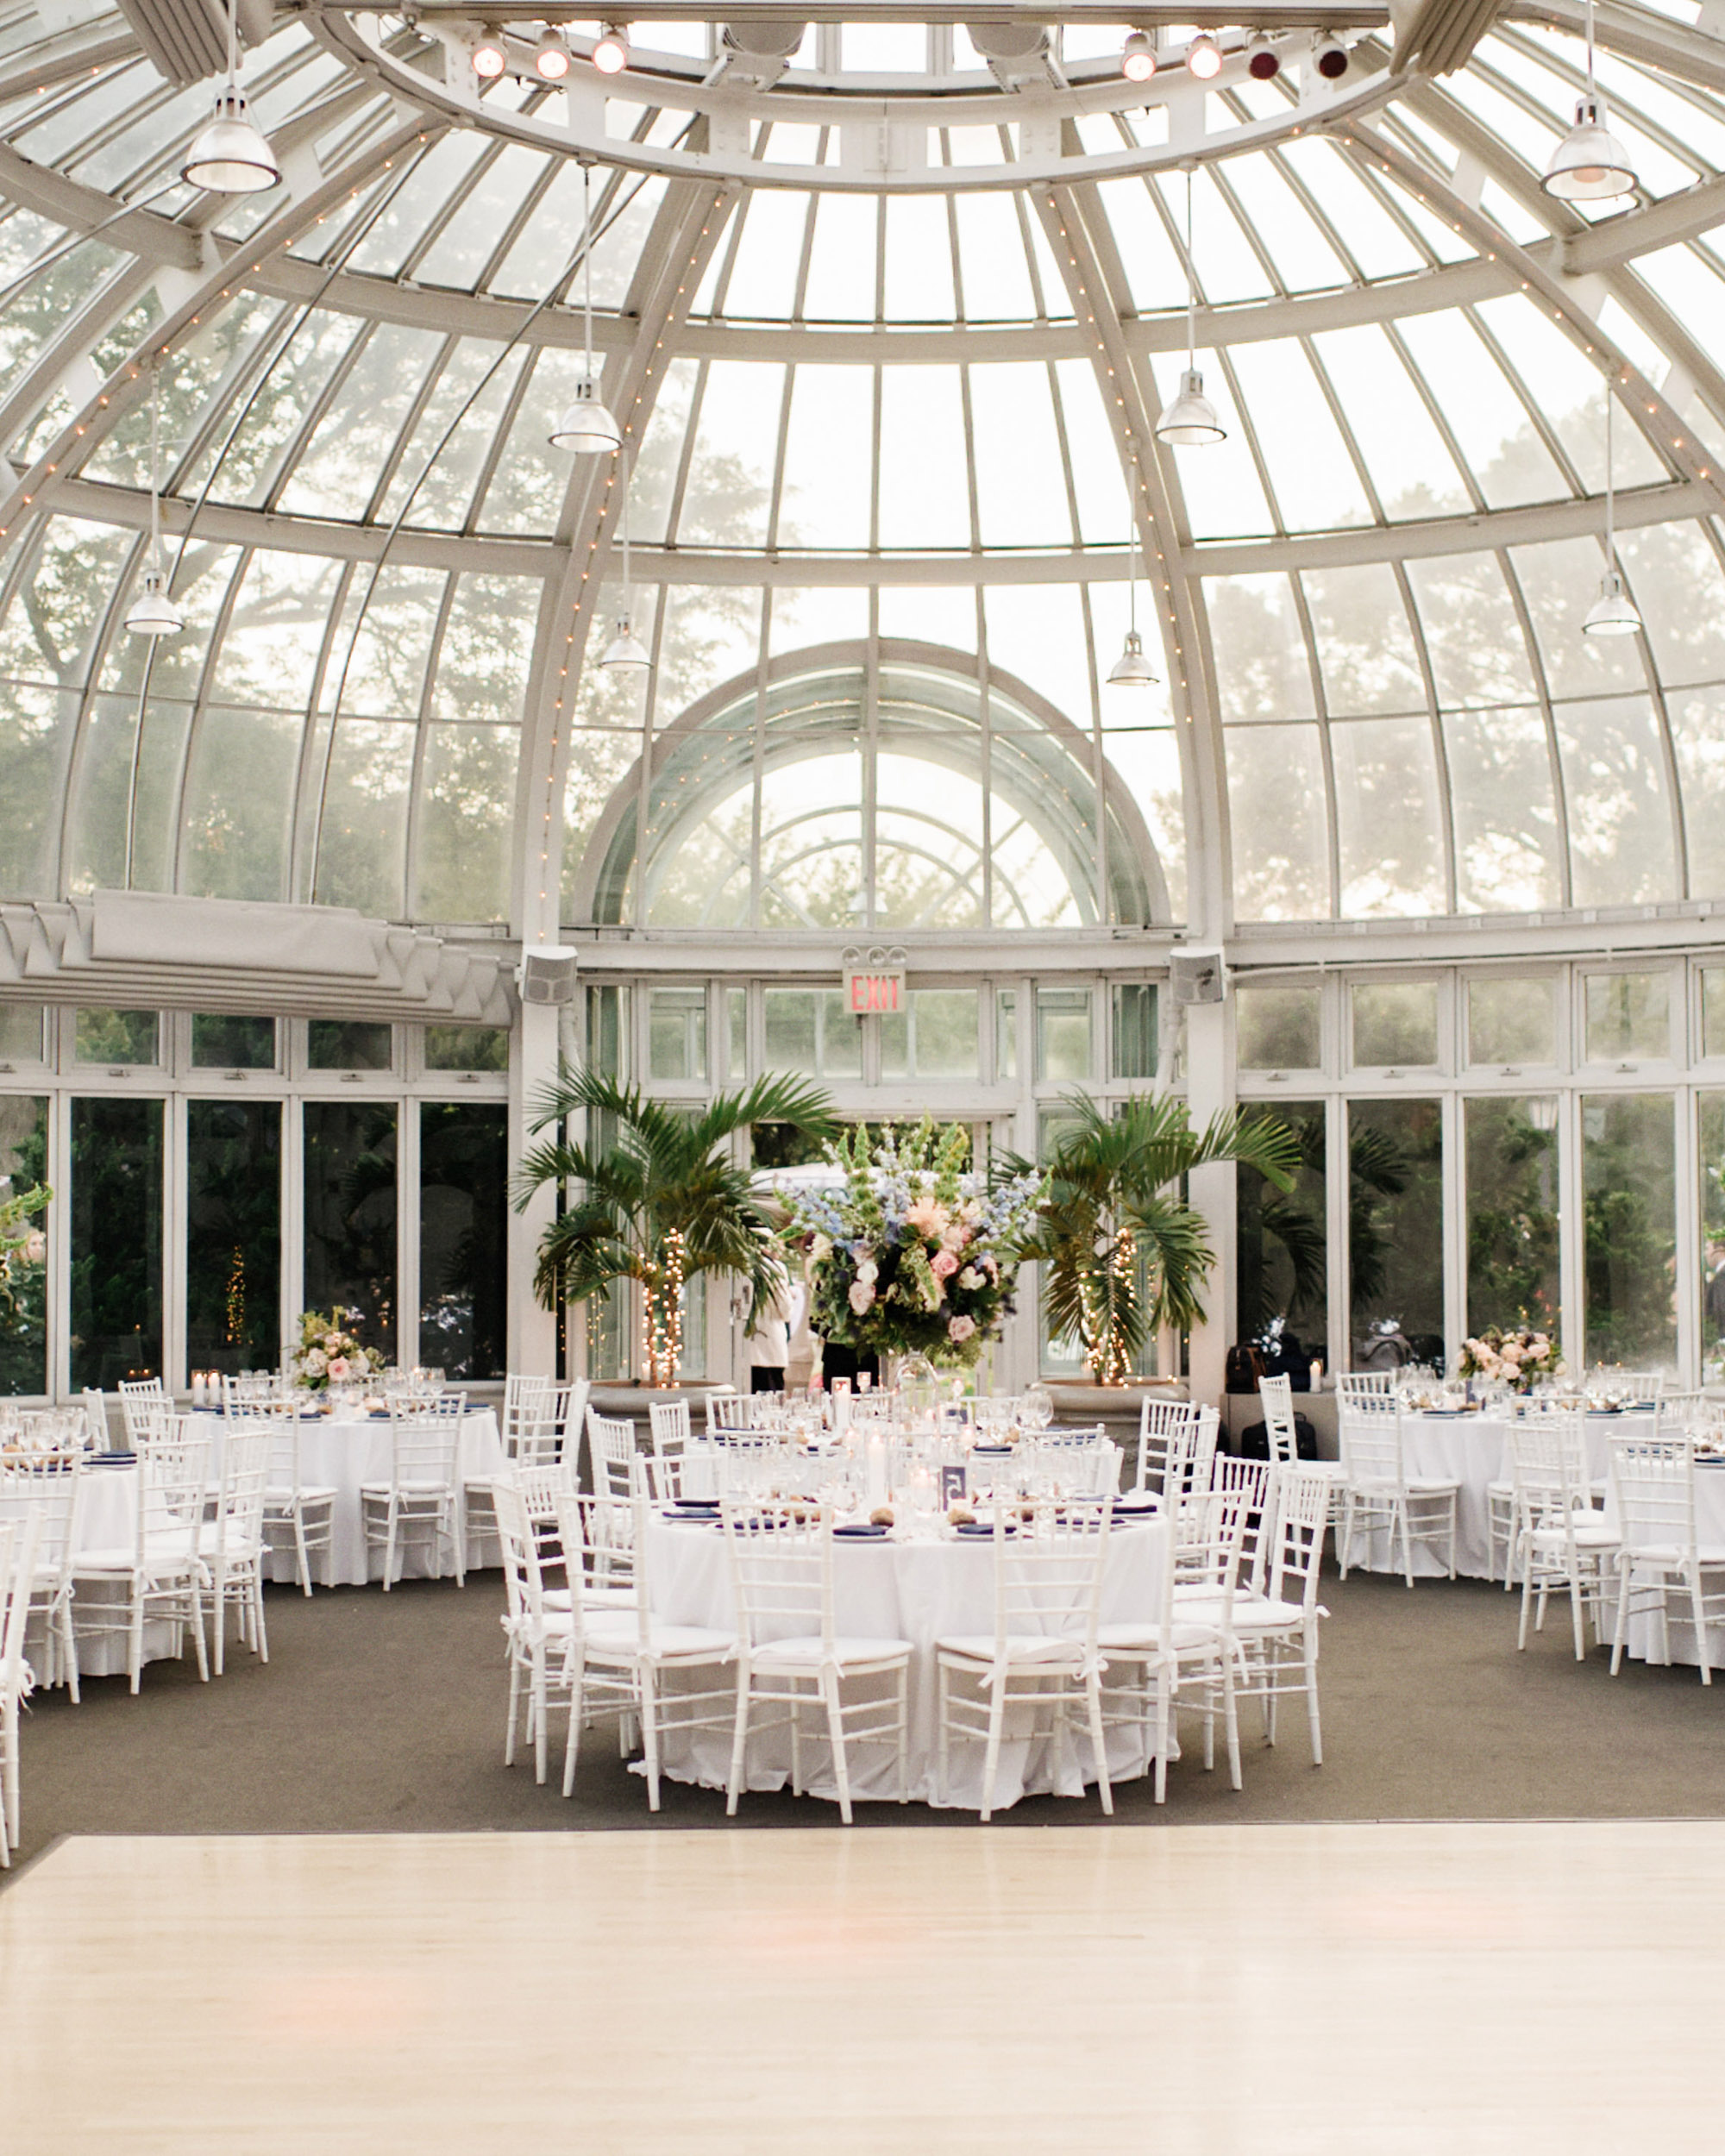 Brooklyn Botanical Gardens Wedding Photographer 47 - Brooklyn Botanic Garden